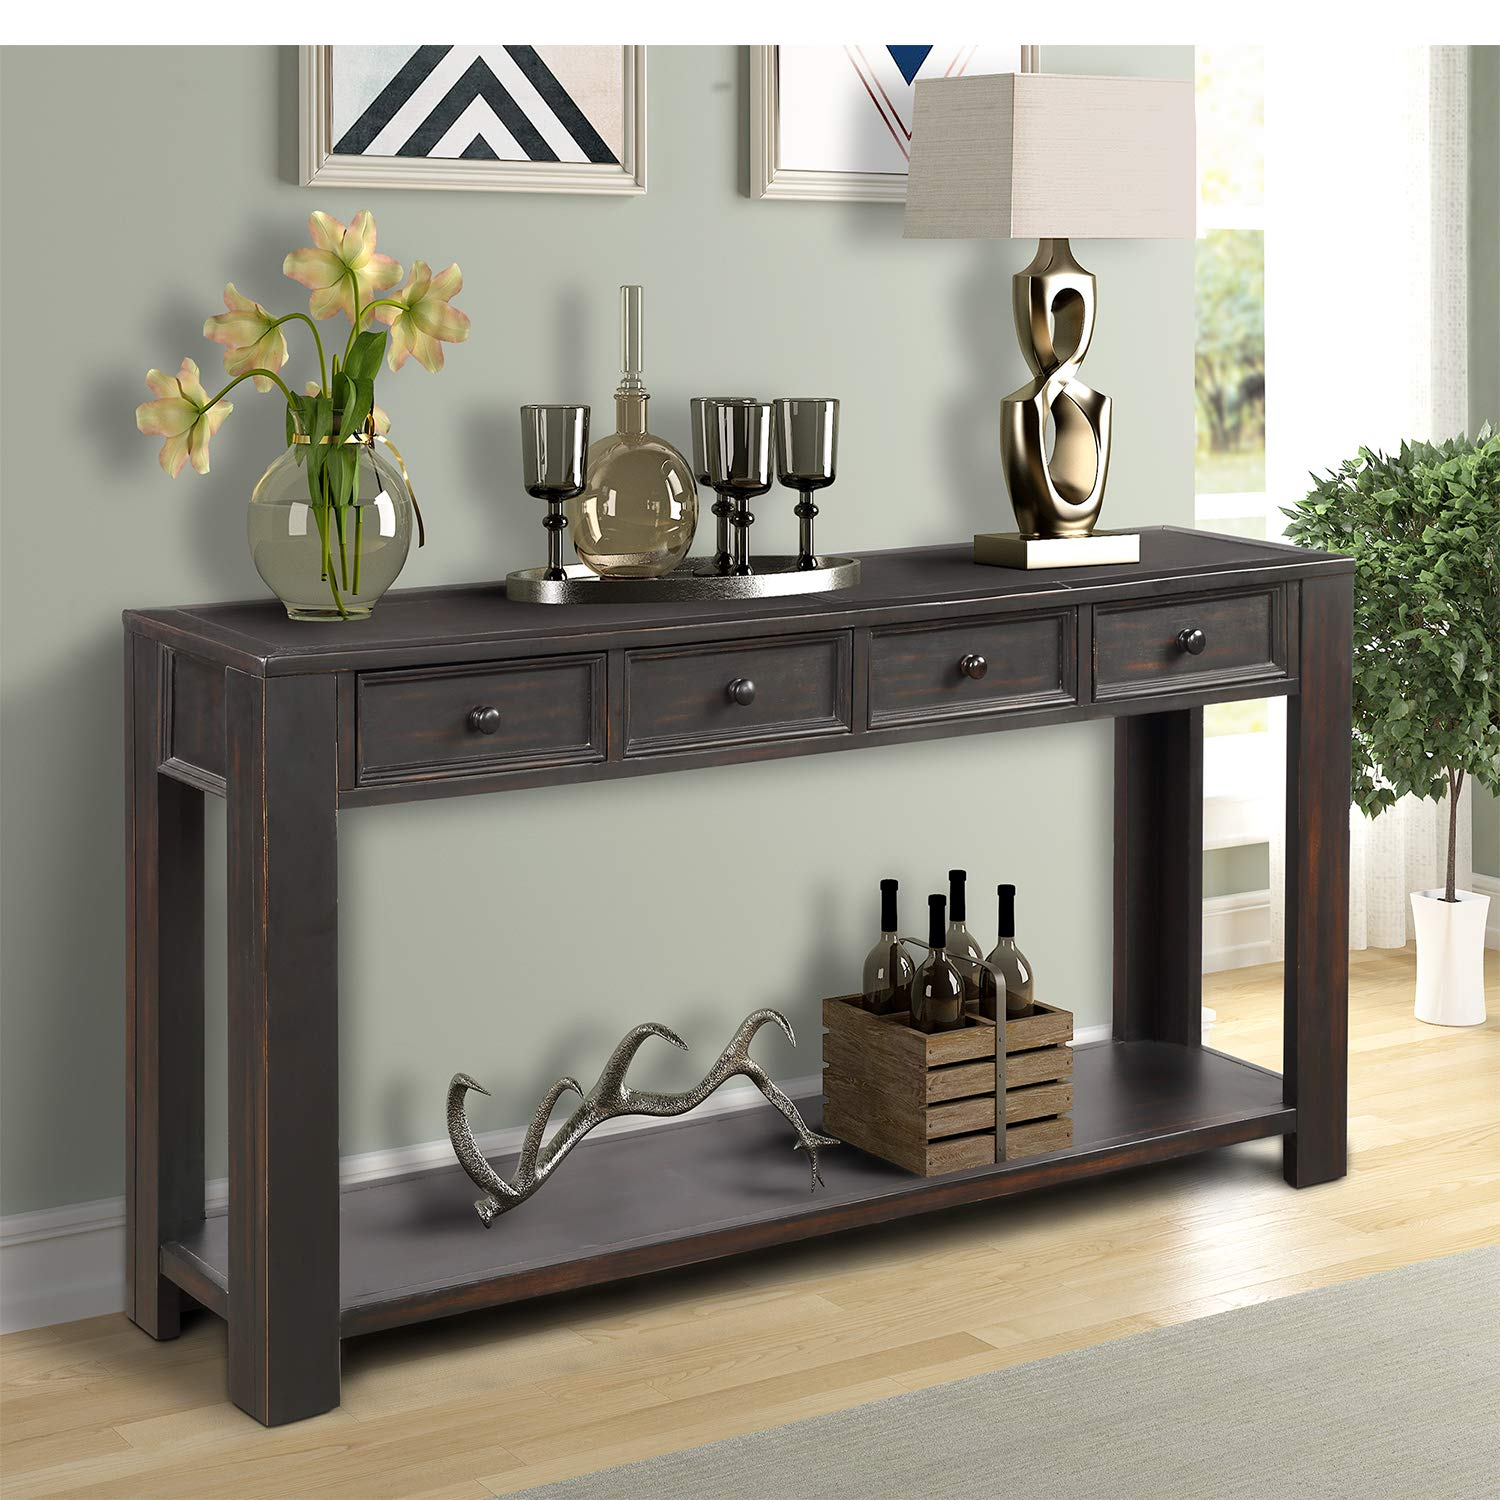 Console Table for Entryway Hallway Easy Assembly 64